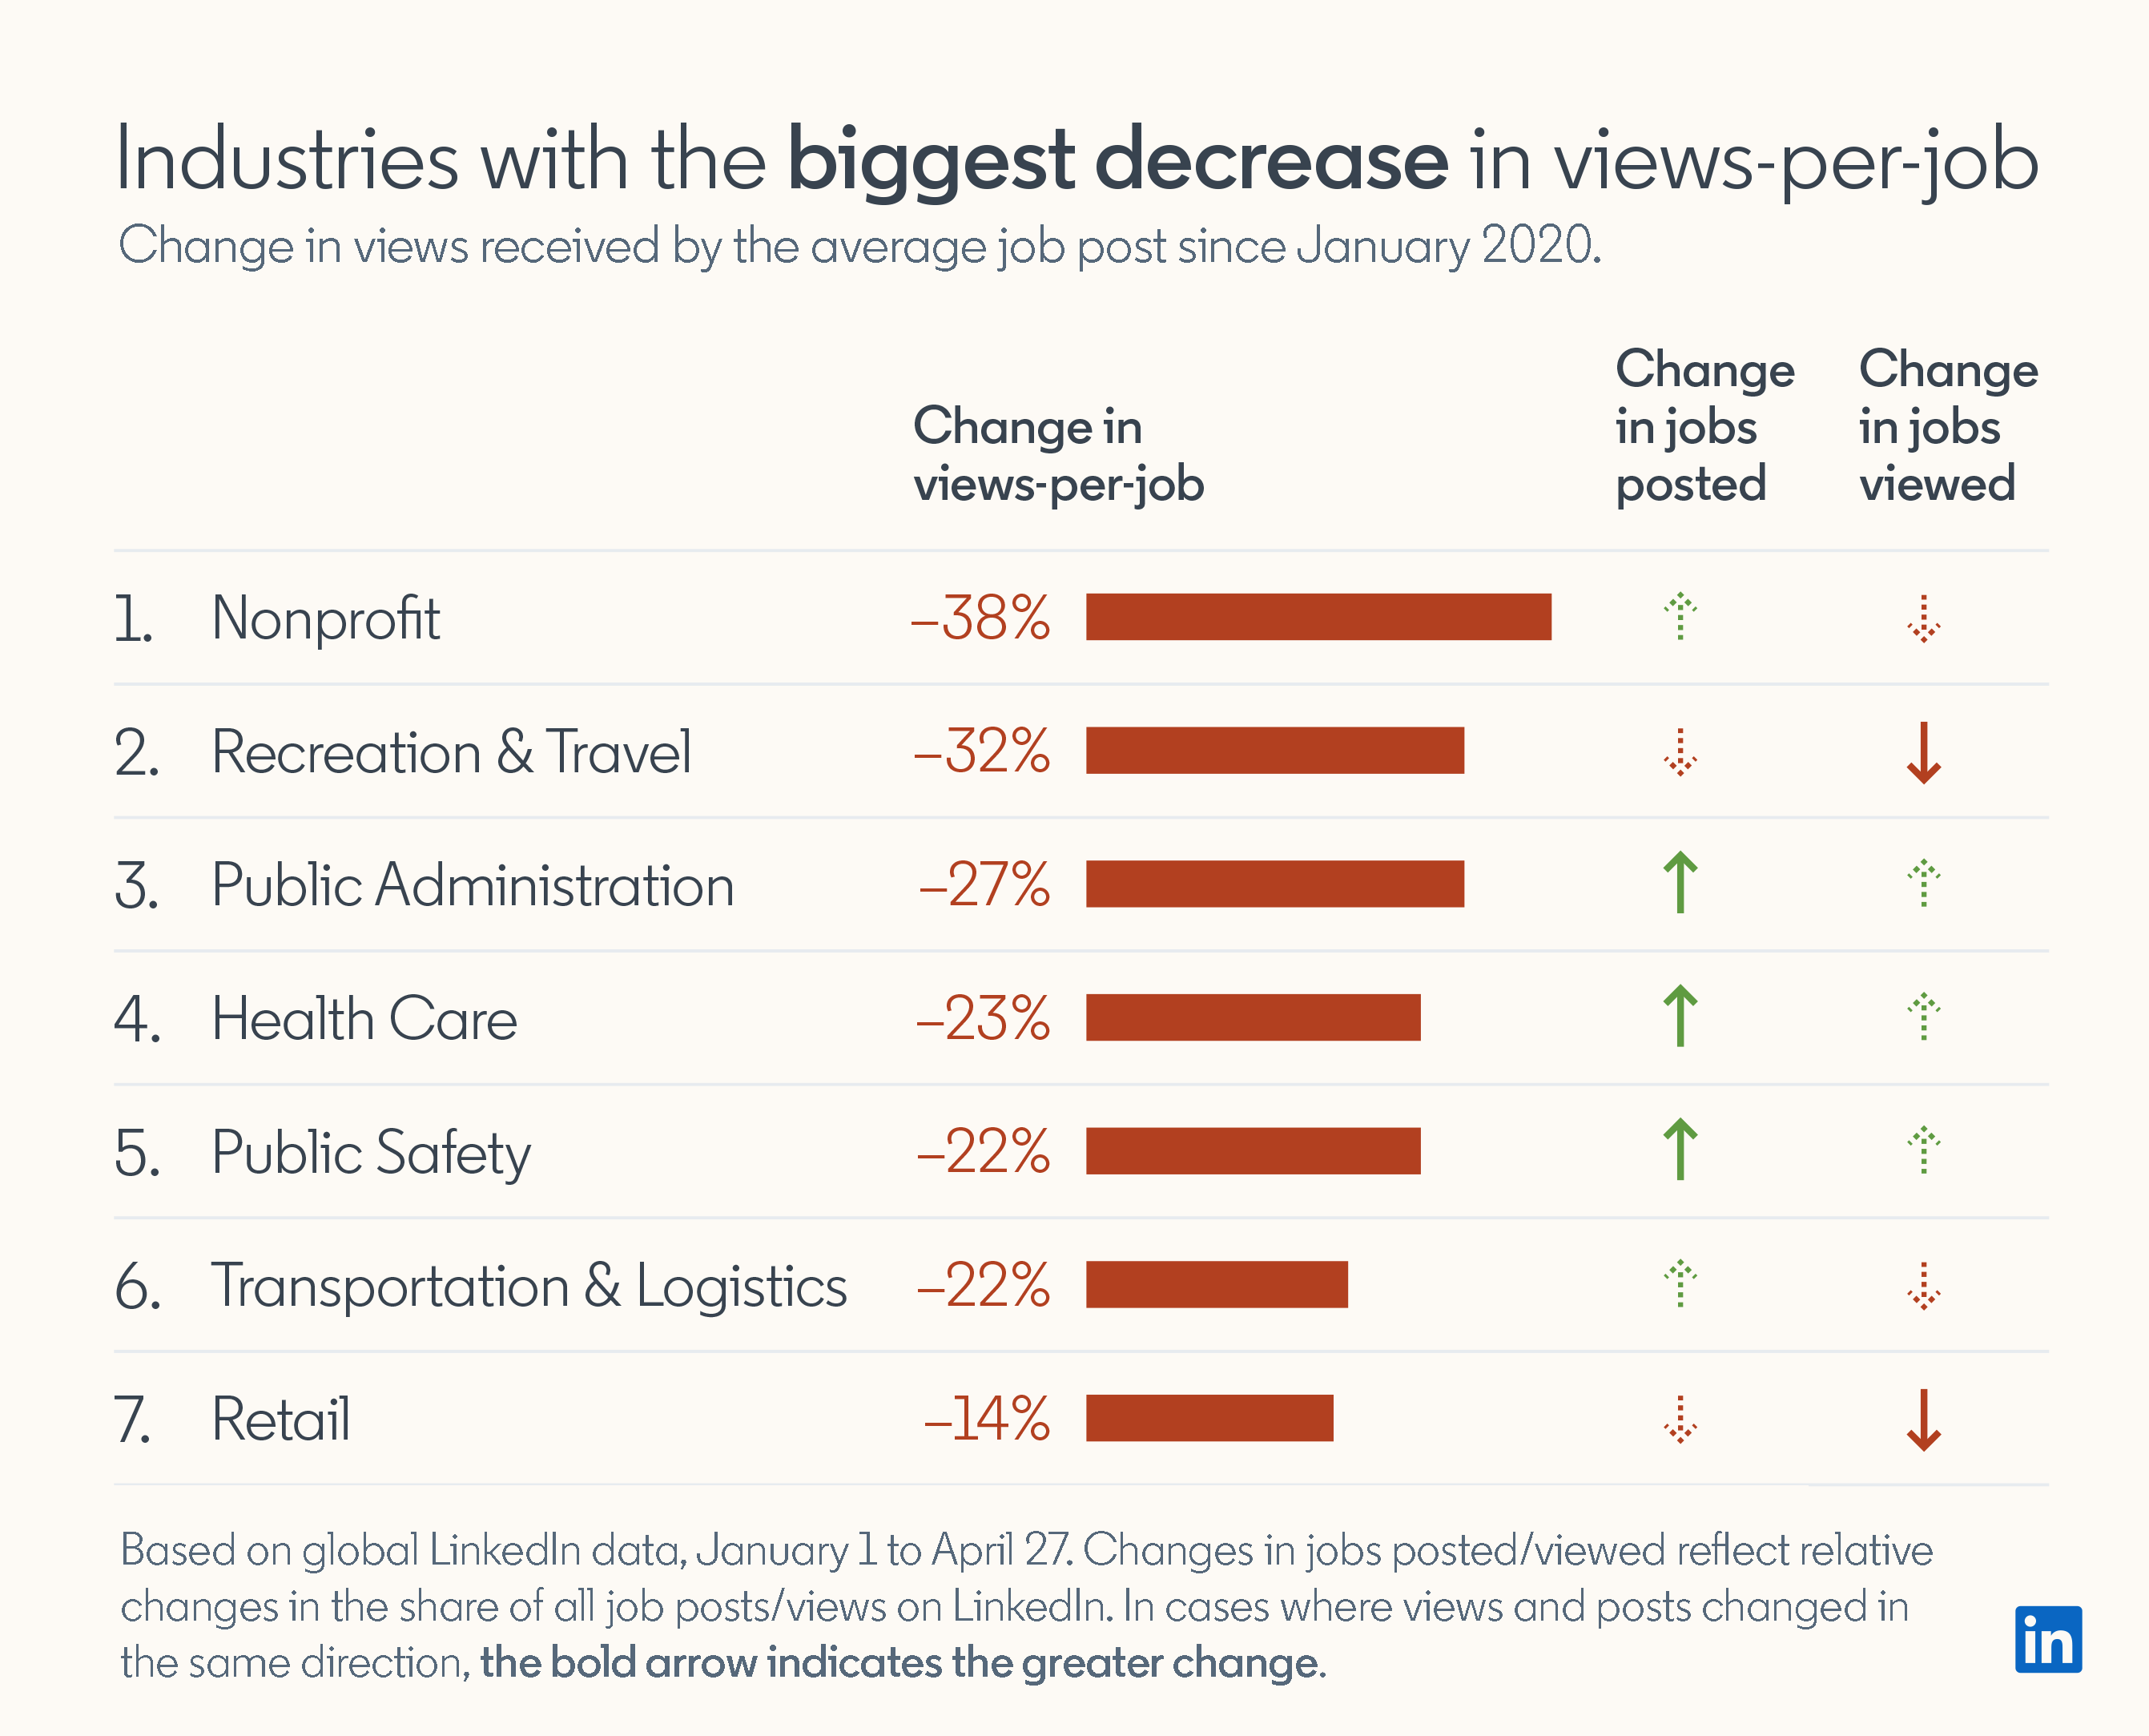 Industries with the biggest decrease in views-per-job Change in views received by the average job post since January 2020.  1. Nonprofit Change in views-per-job: -38% Change in jobs posted: increased Change in jobs viewed: decreased  2. Recreation & Travel Change in views-per-job: -32% Change in jobs posted: decreased Change in jobs viewed: decreased  3. Public Administration Change in views-per-job: -27% Change in jobs posted: increased Change in jobs viewed: increased  4. Health Care Change in views-per-job: -23% Change in jobs posted: increased Change in jobs viewed: increased  5. Public Safety Change in views-per-job: -22% Change in jobs posted: increased Change in jobs viewed: increased  6. Transportation & Logistics Change in views-per-job: -22% Change in jobs posted: increased Change in jobs viewed: decreased  7. Retail Change in views-per-job: -14% Change in jobs posted: decreased Change in jobs viewed: decreased  Based on global LinkedIn date, January 1 to April 27. Changes in jobs posted/viewed reflect relative changes in the share of all job posts/views on LinkedIn.